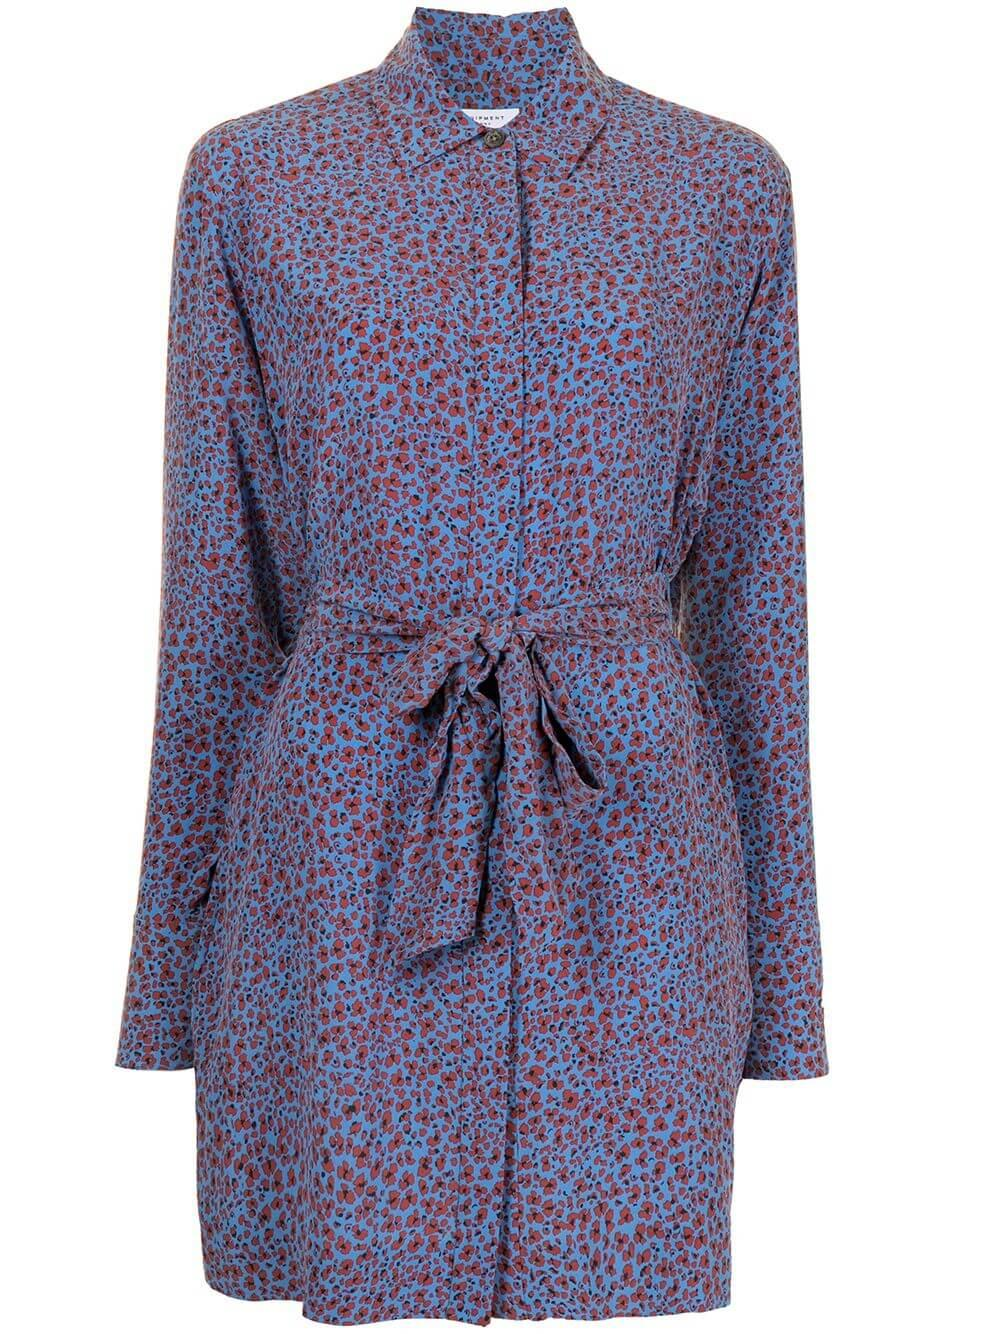 Sennet Floral Shirt Dress Item # 21-1-008335-DR02655